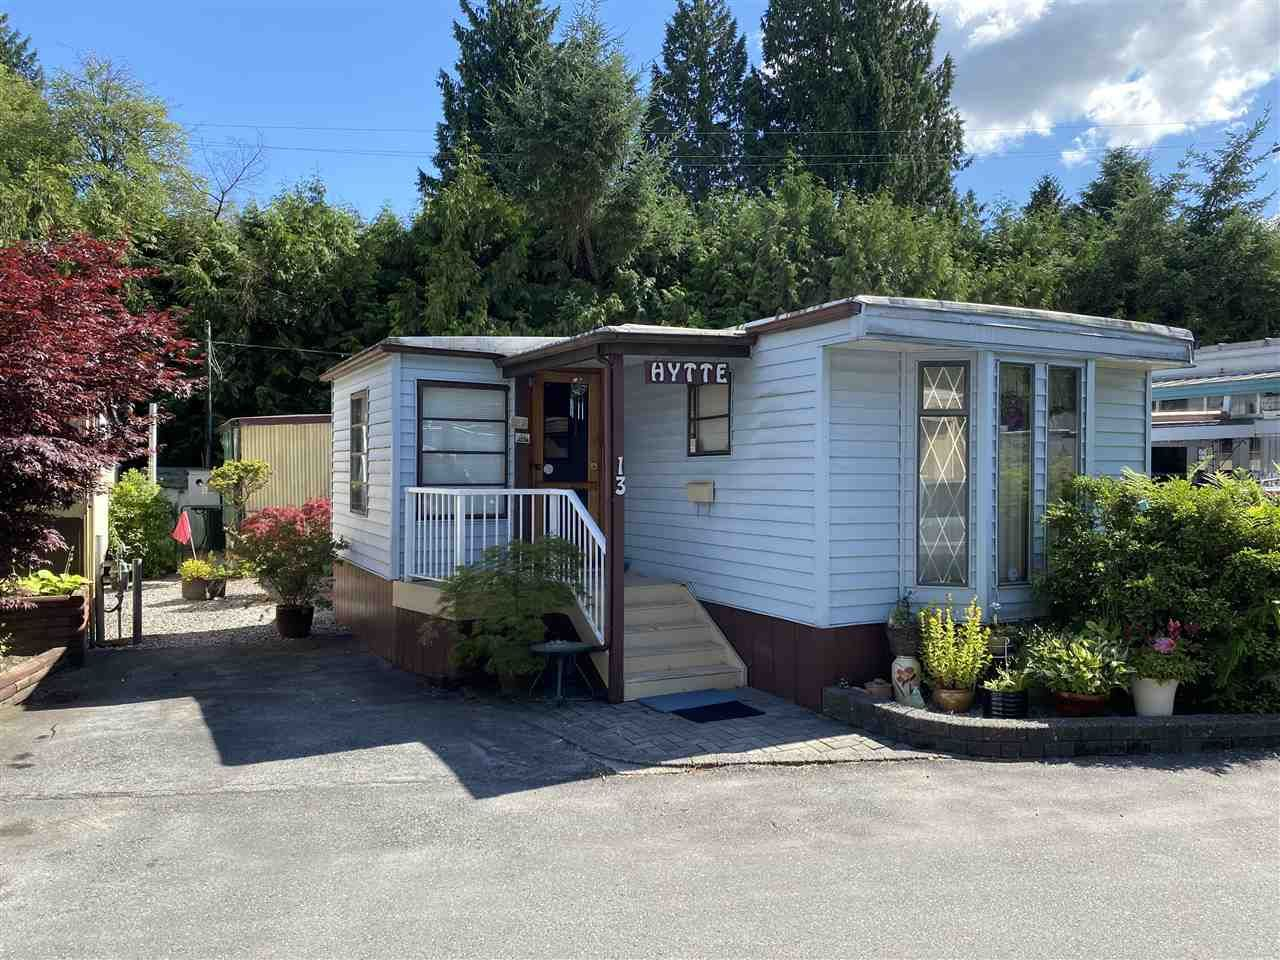 """Main Photo: 13 4200 DEWDNEY TRUNK Road in Coquitlam: Ranch Park Manufactured Home for sale in """"HIDEAWAY PARK"""" : MLS®# R2475292"""